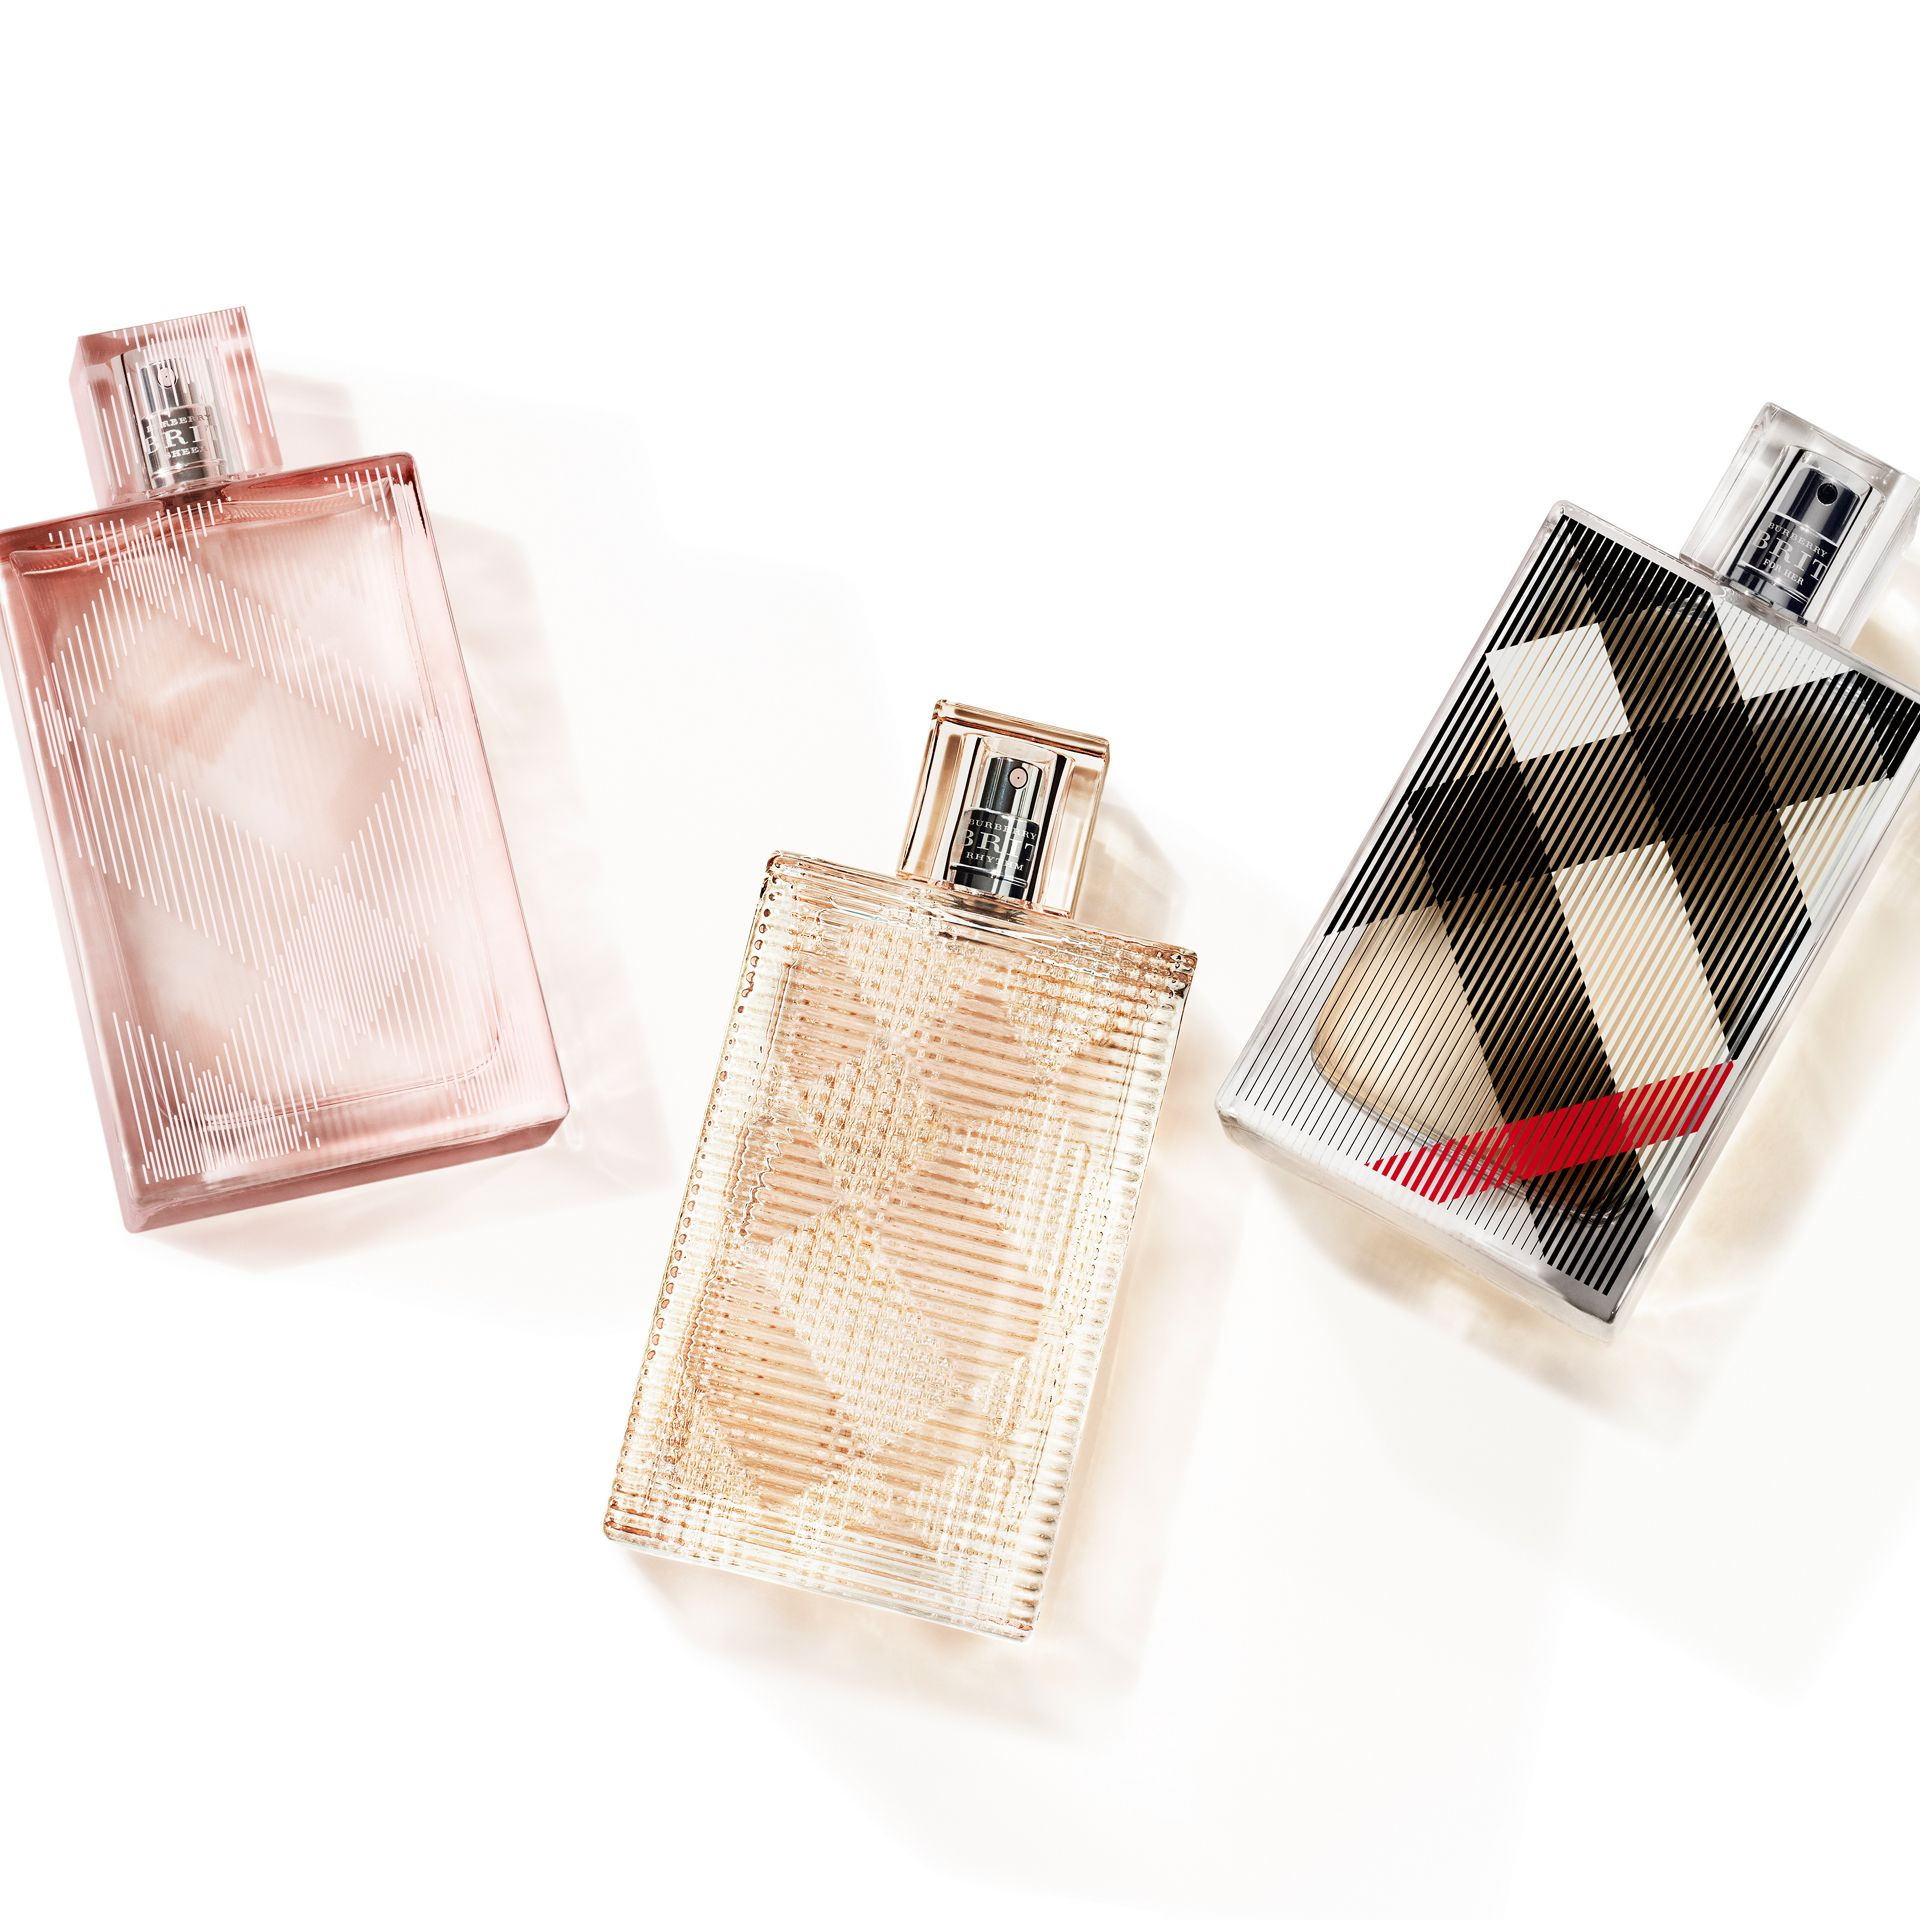 Burberry Brit Sheer 淡香水 200ml - 圖庫照片 3